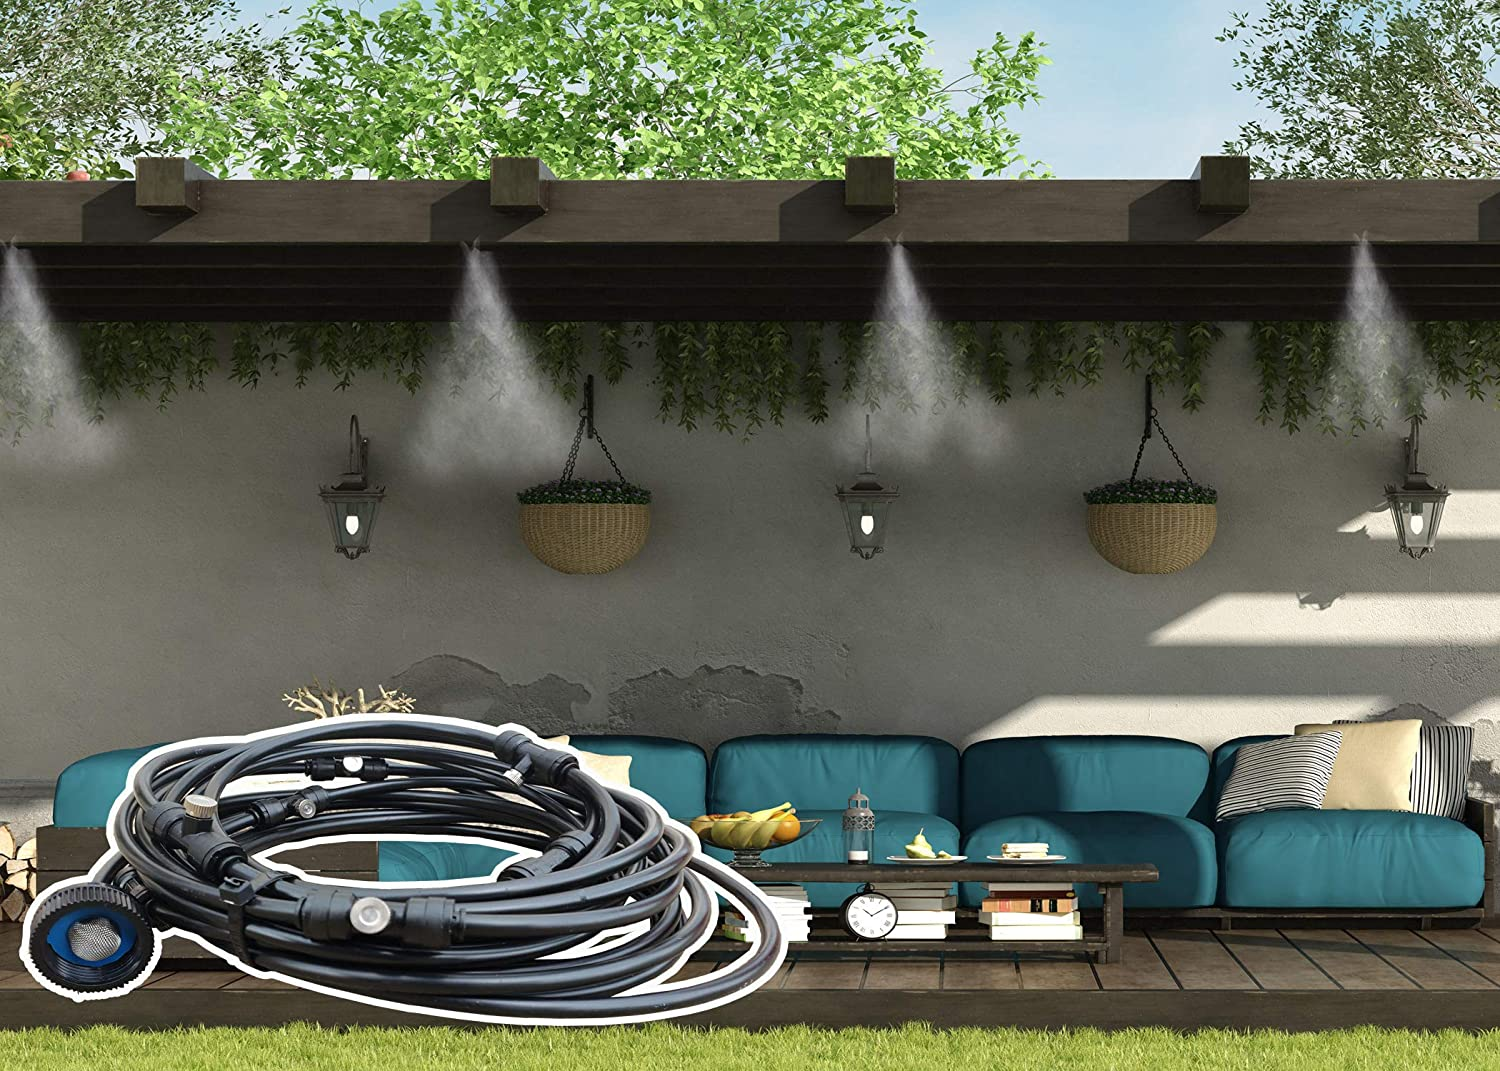 for Outdoor Cooling Patio Misting System 4 Nozzle Misting System 4 Nozzle System